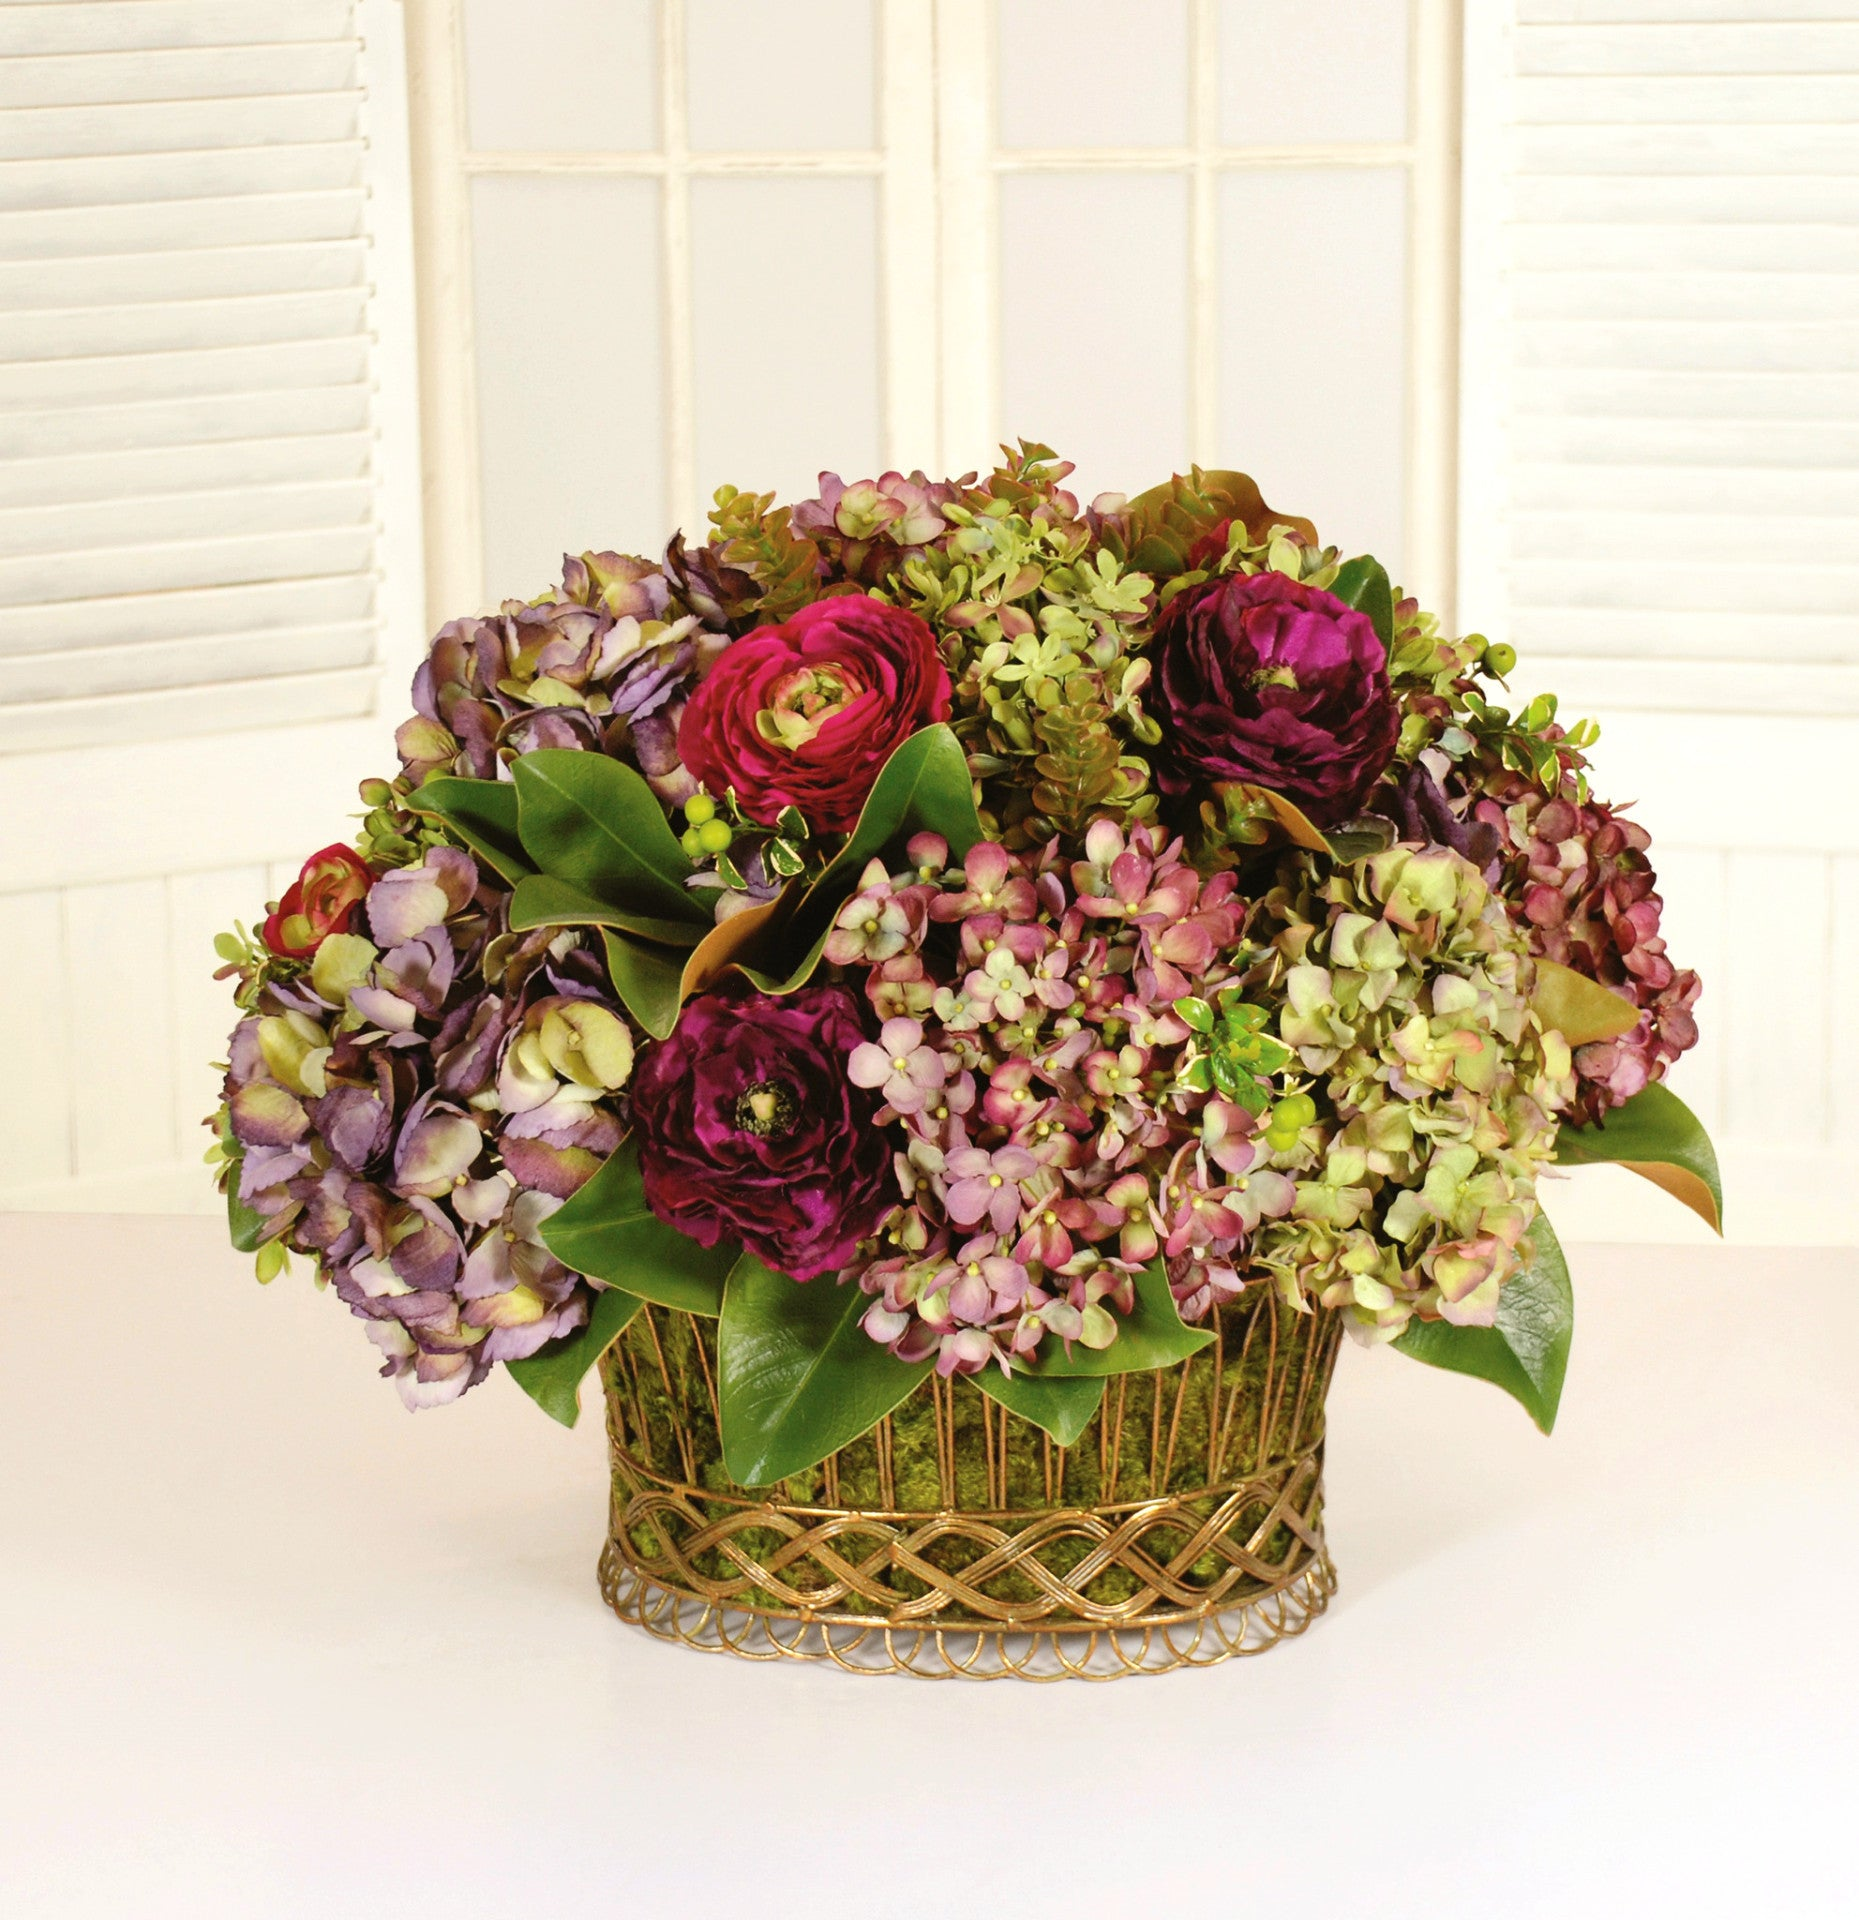 TUSCAN GARDEN FRENCH NESTLE (WHD038-MI) - Winward Home silk flower arrangements